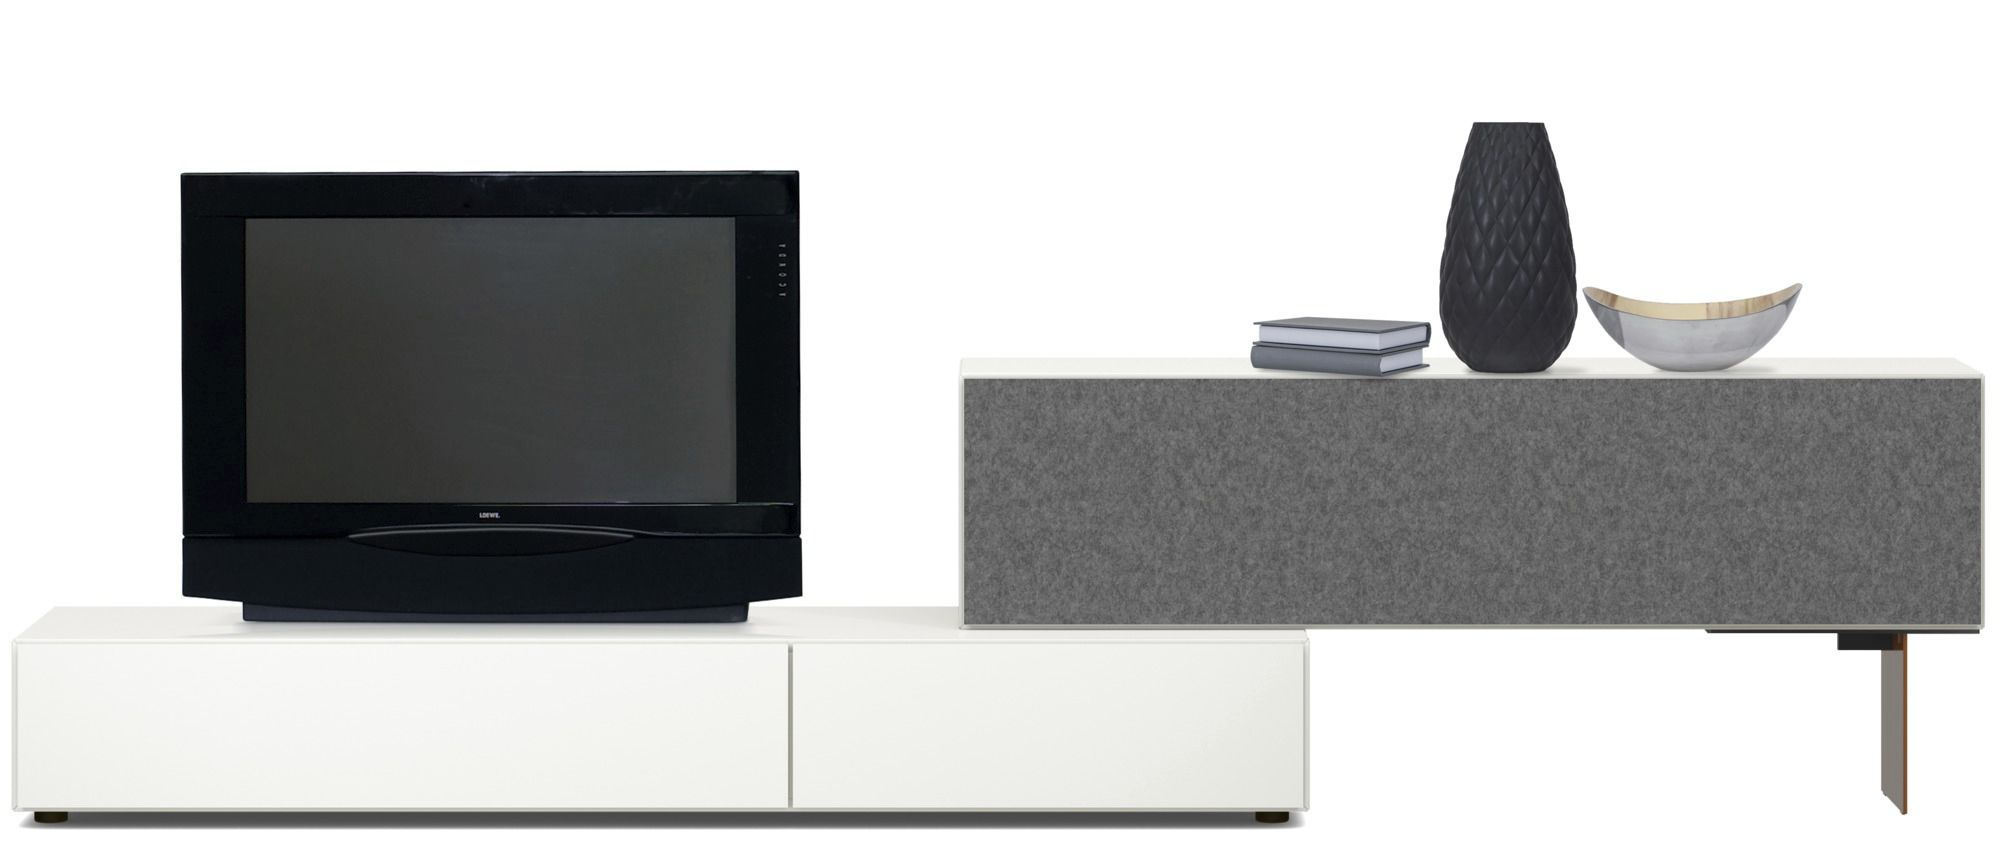 Meuble Tv Bo Concept - Contemporary Tv Cabinet Hi Fi Glass Mdf Lugano Boconcept[mjhdah]http://www.teensanalyzed.us/img/41947/meuble-tv-fermo-boconcept.jpg